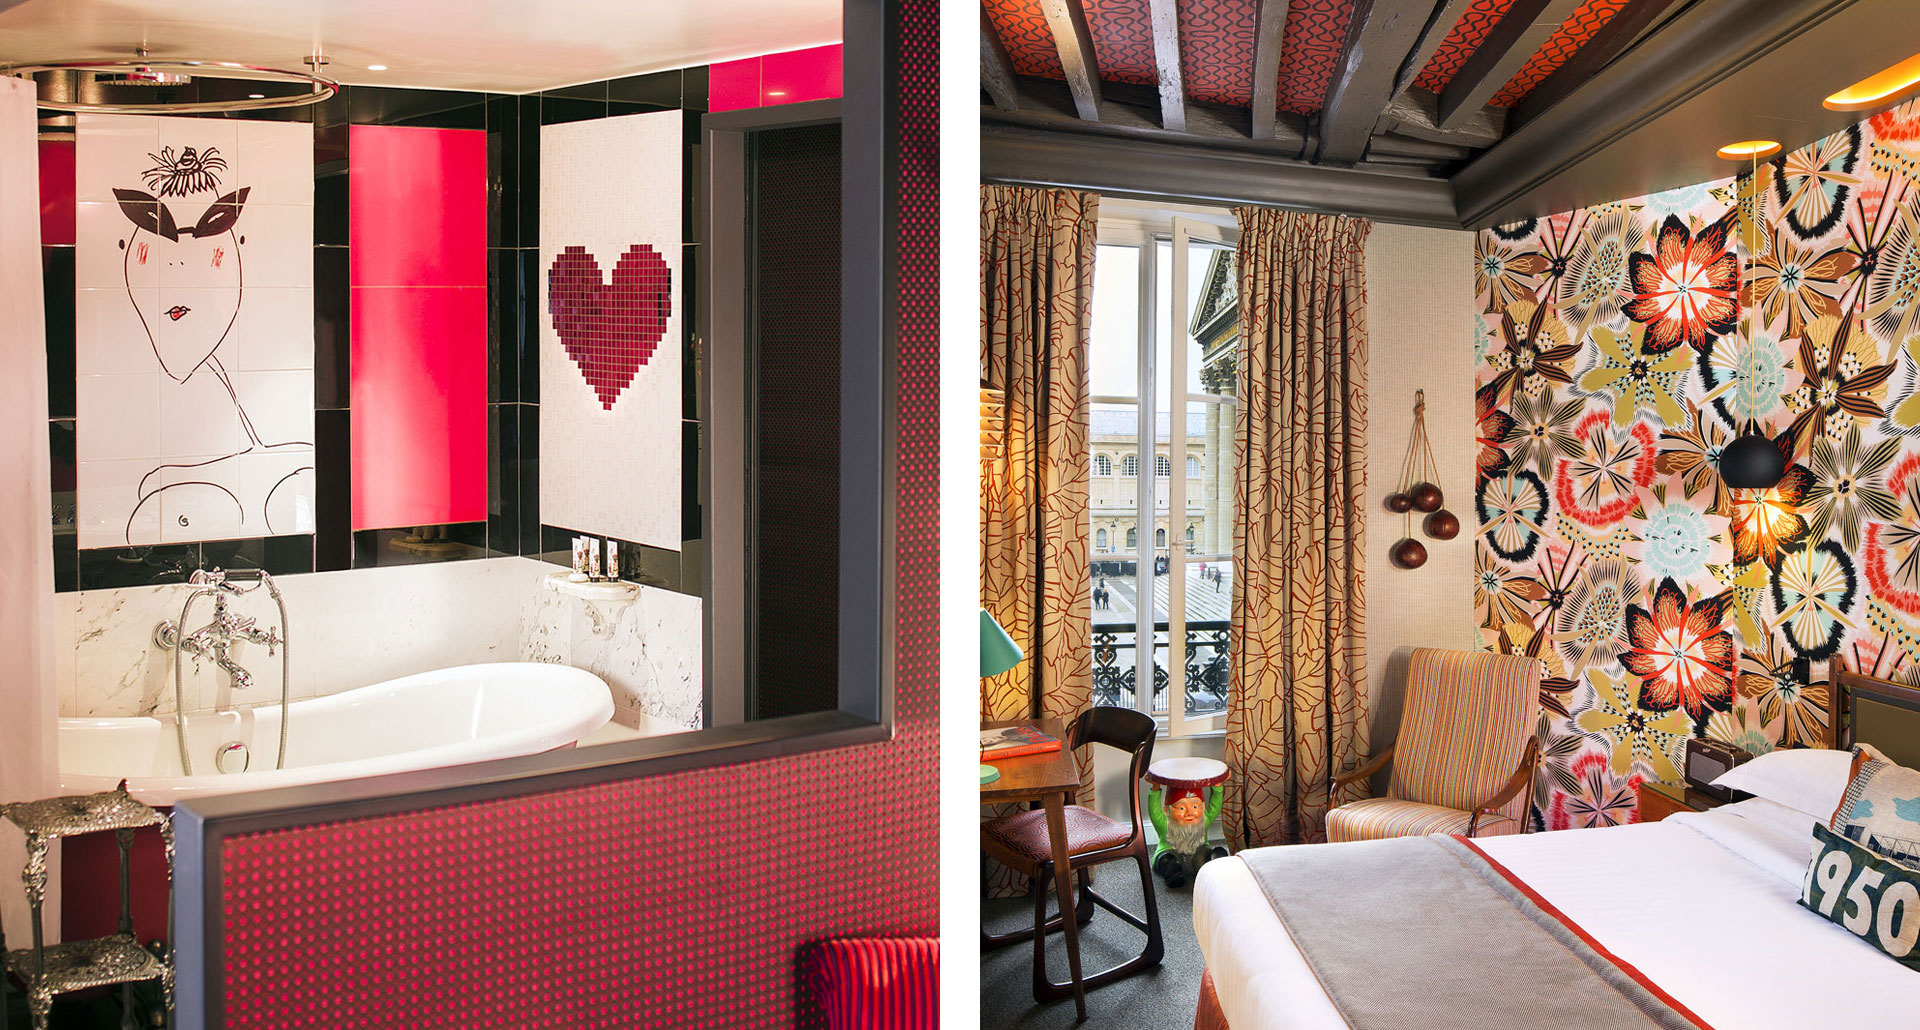 Le Dames du Pantheon - boutique hotel in Parigi